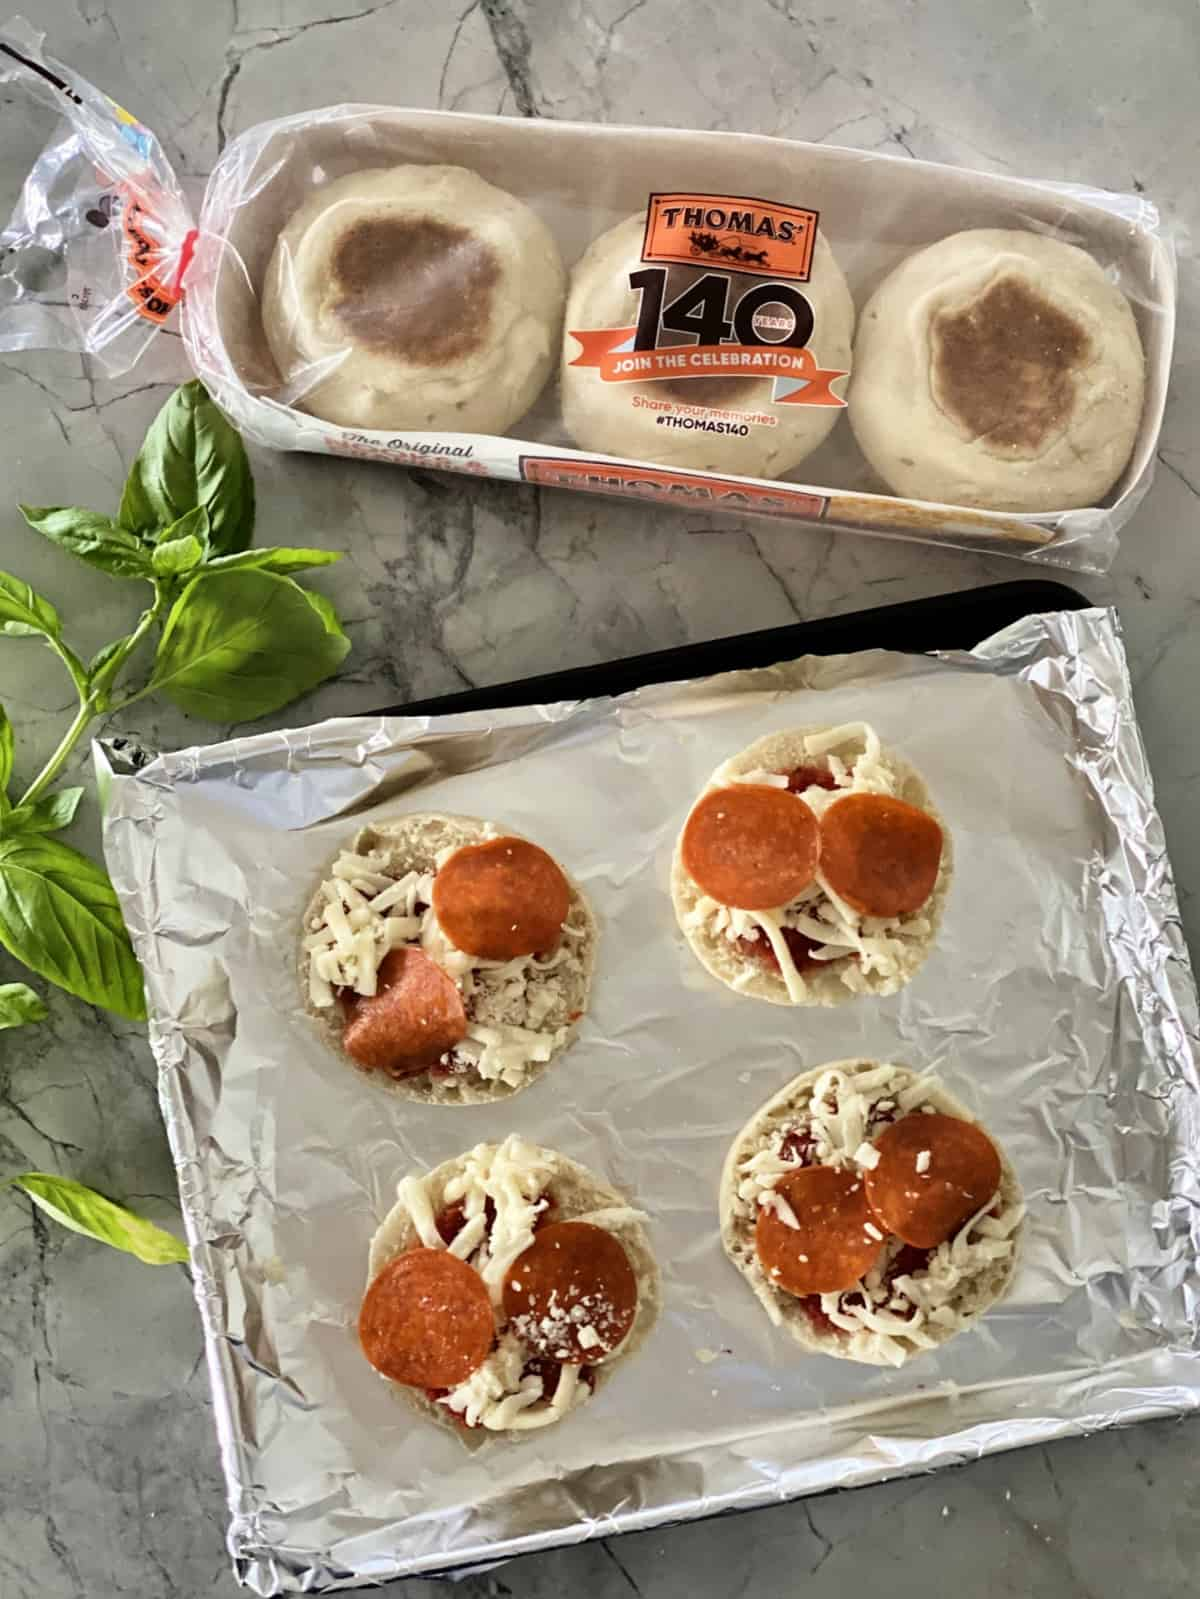 Toaster Oven English Muffin Pizzas assembled on aluminum foil covered pan next to package of Thomas English Muffins.